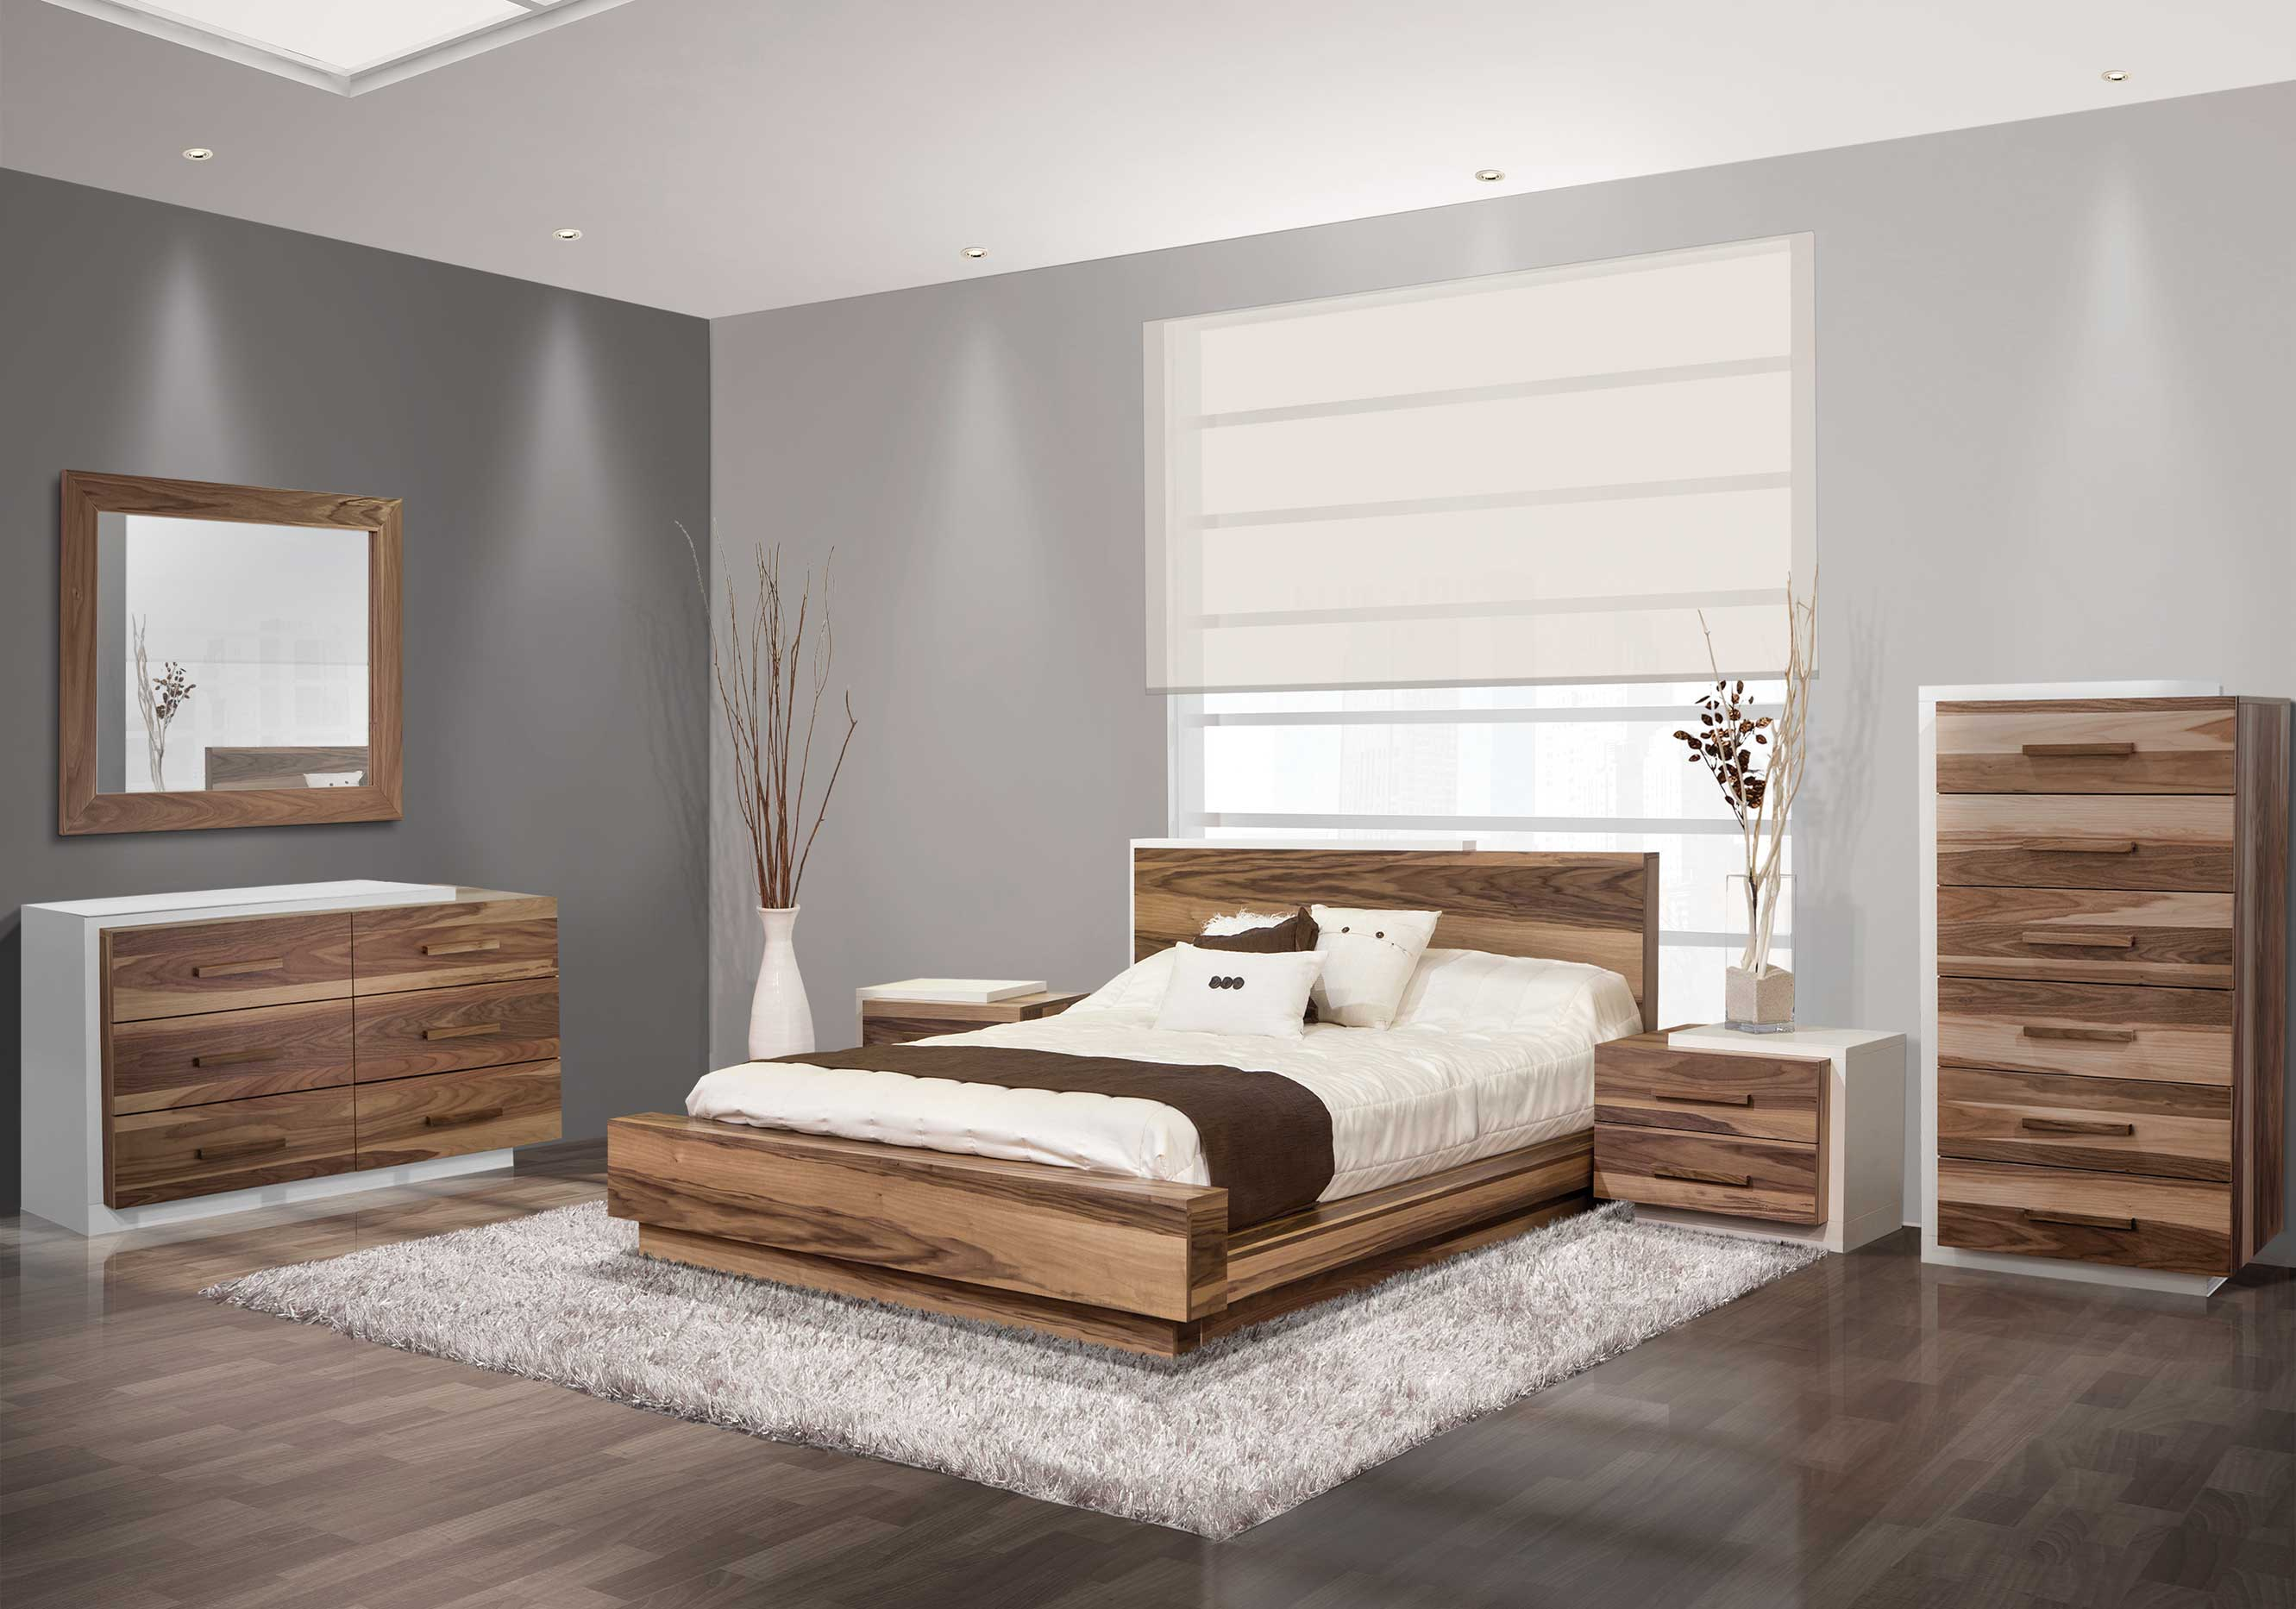 viebois chambres coucher page 1. Black Bedroom Furniture Sets. Home Design Ideas